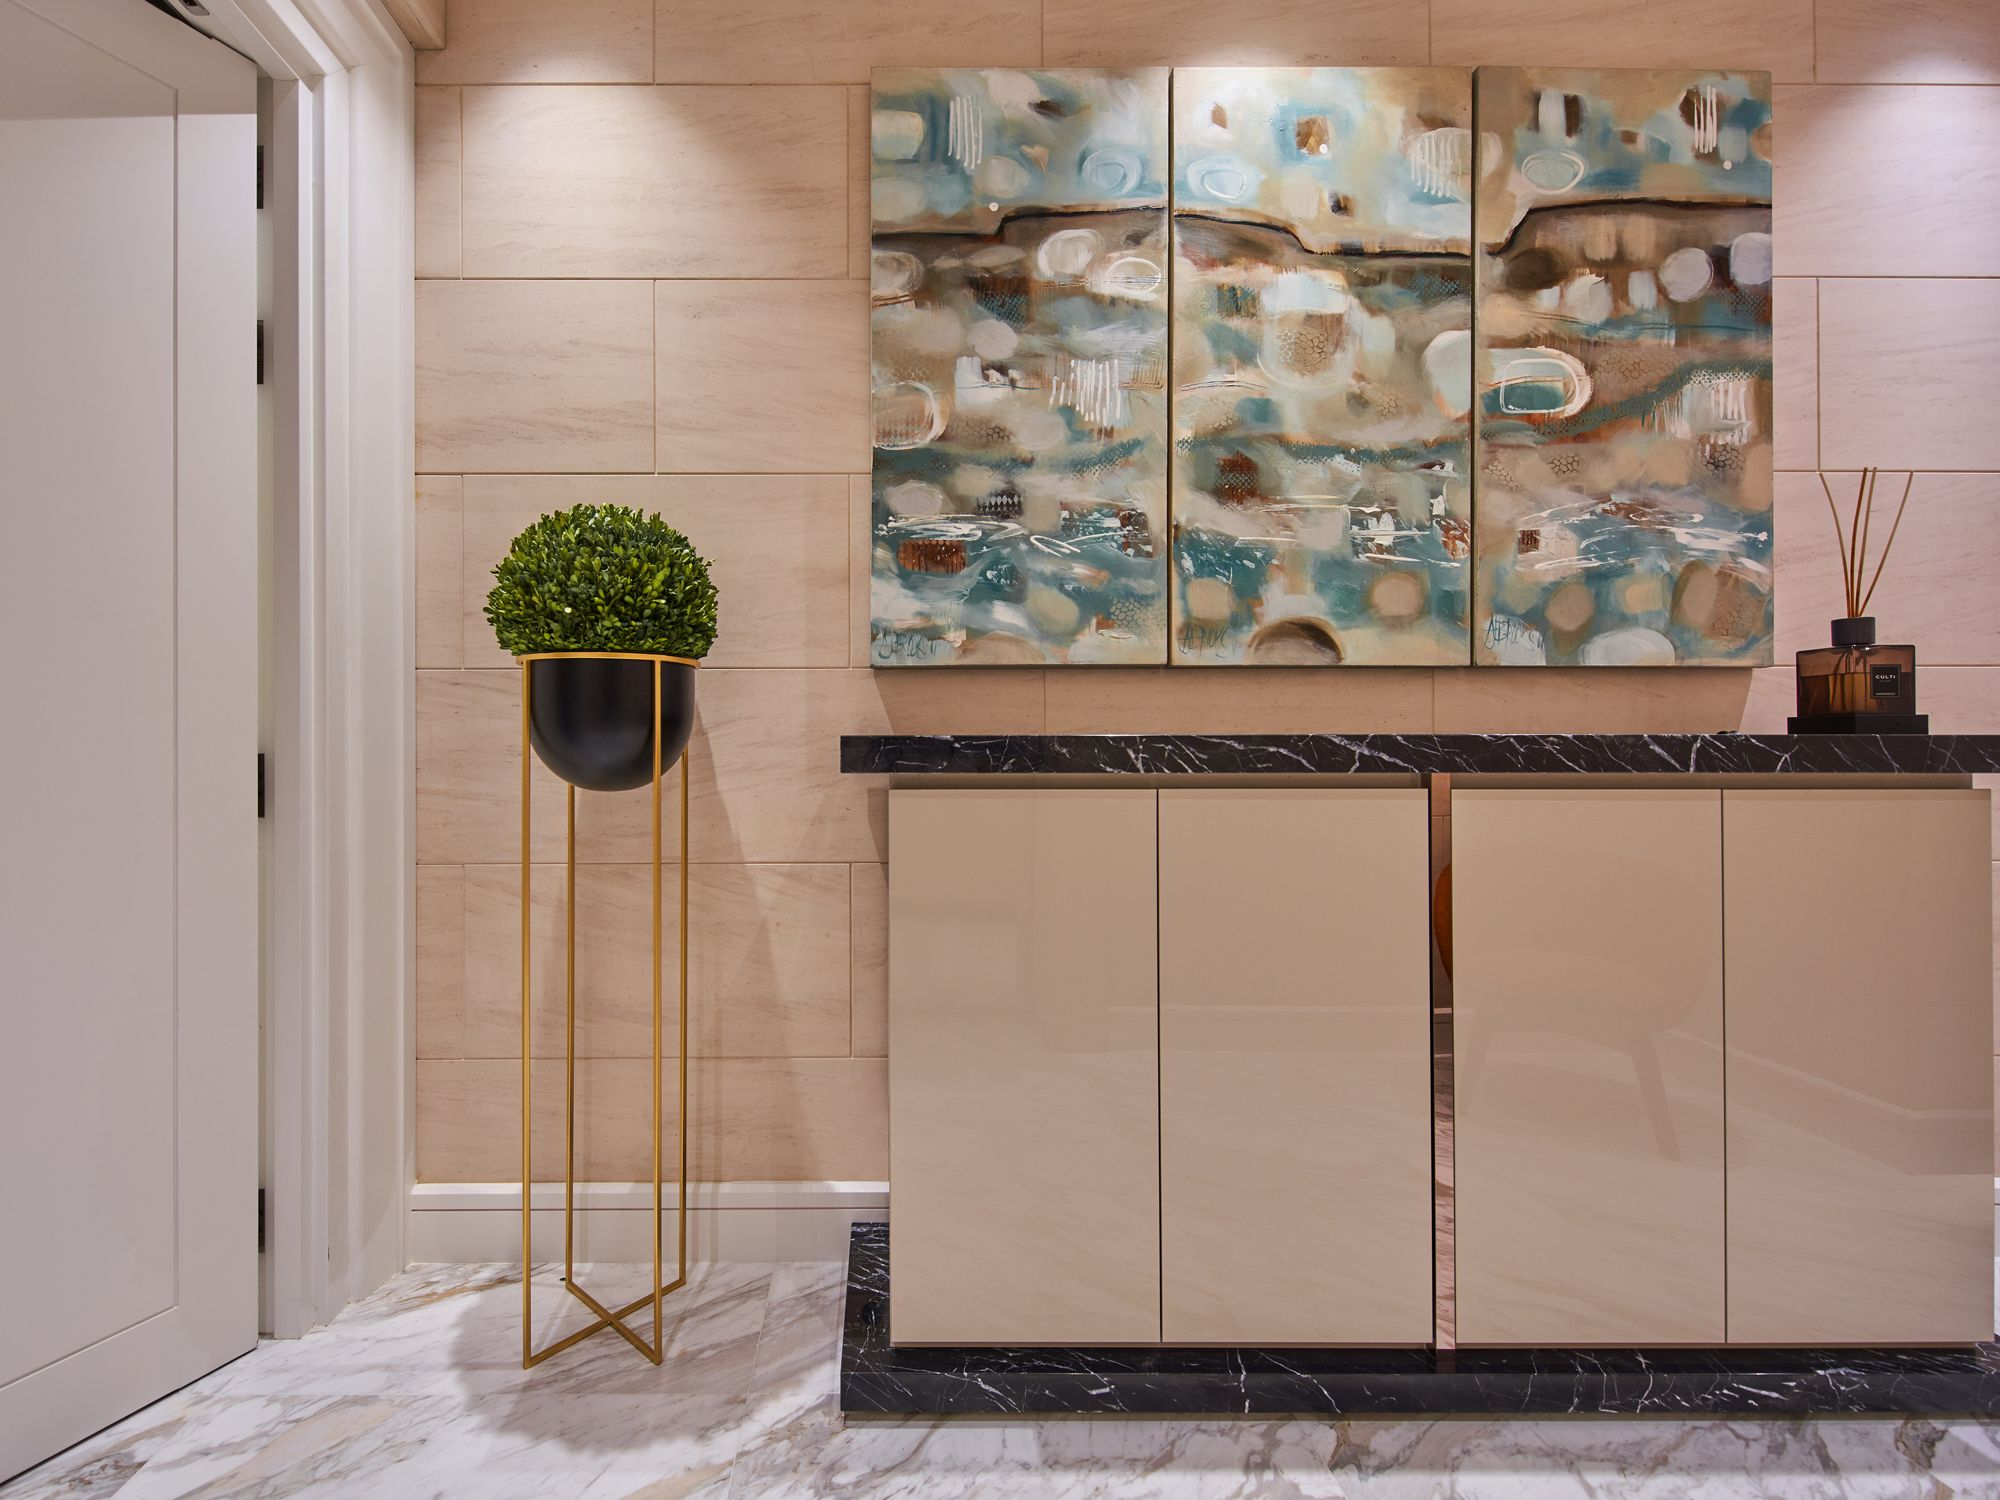 An abstract painting adds artistic flourish to the entryway